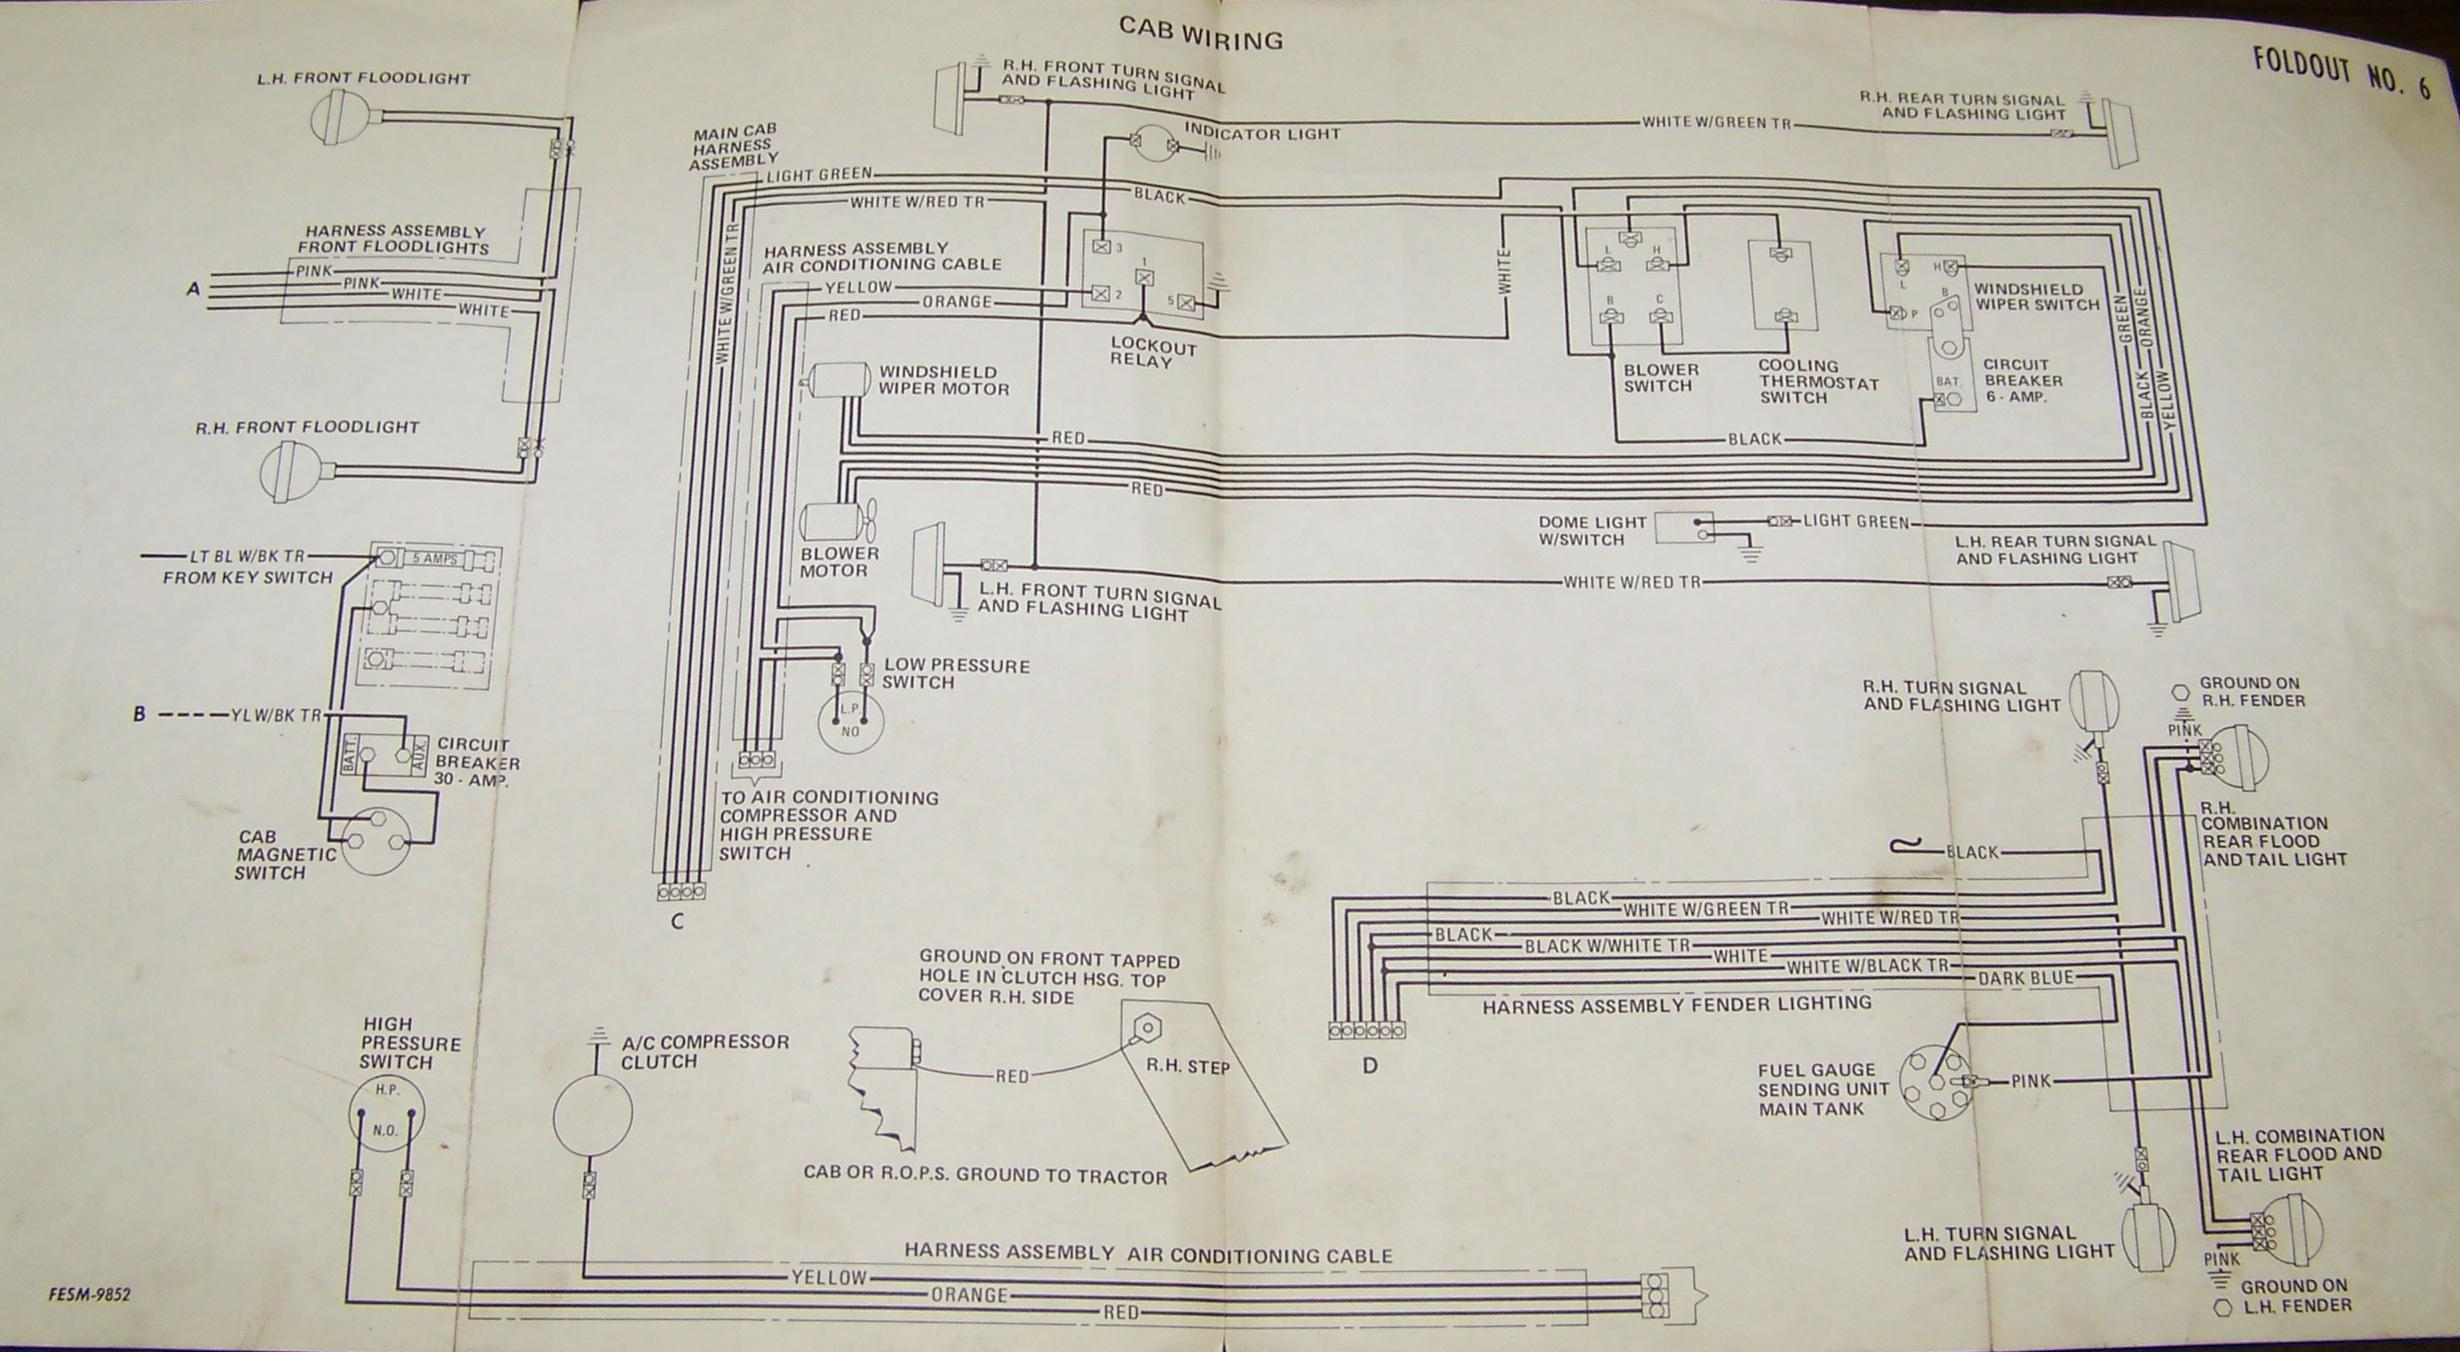 86series6 carter & gruenewald co inc ih farmall tractor electrical fordson power major wiring diagram at reclaimingppi.co